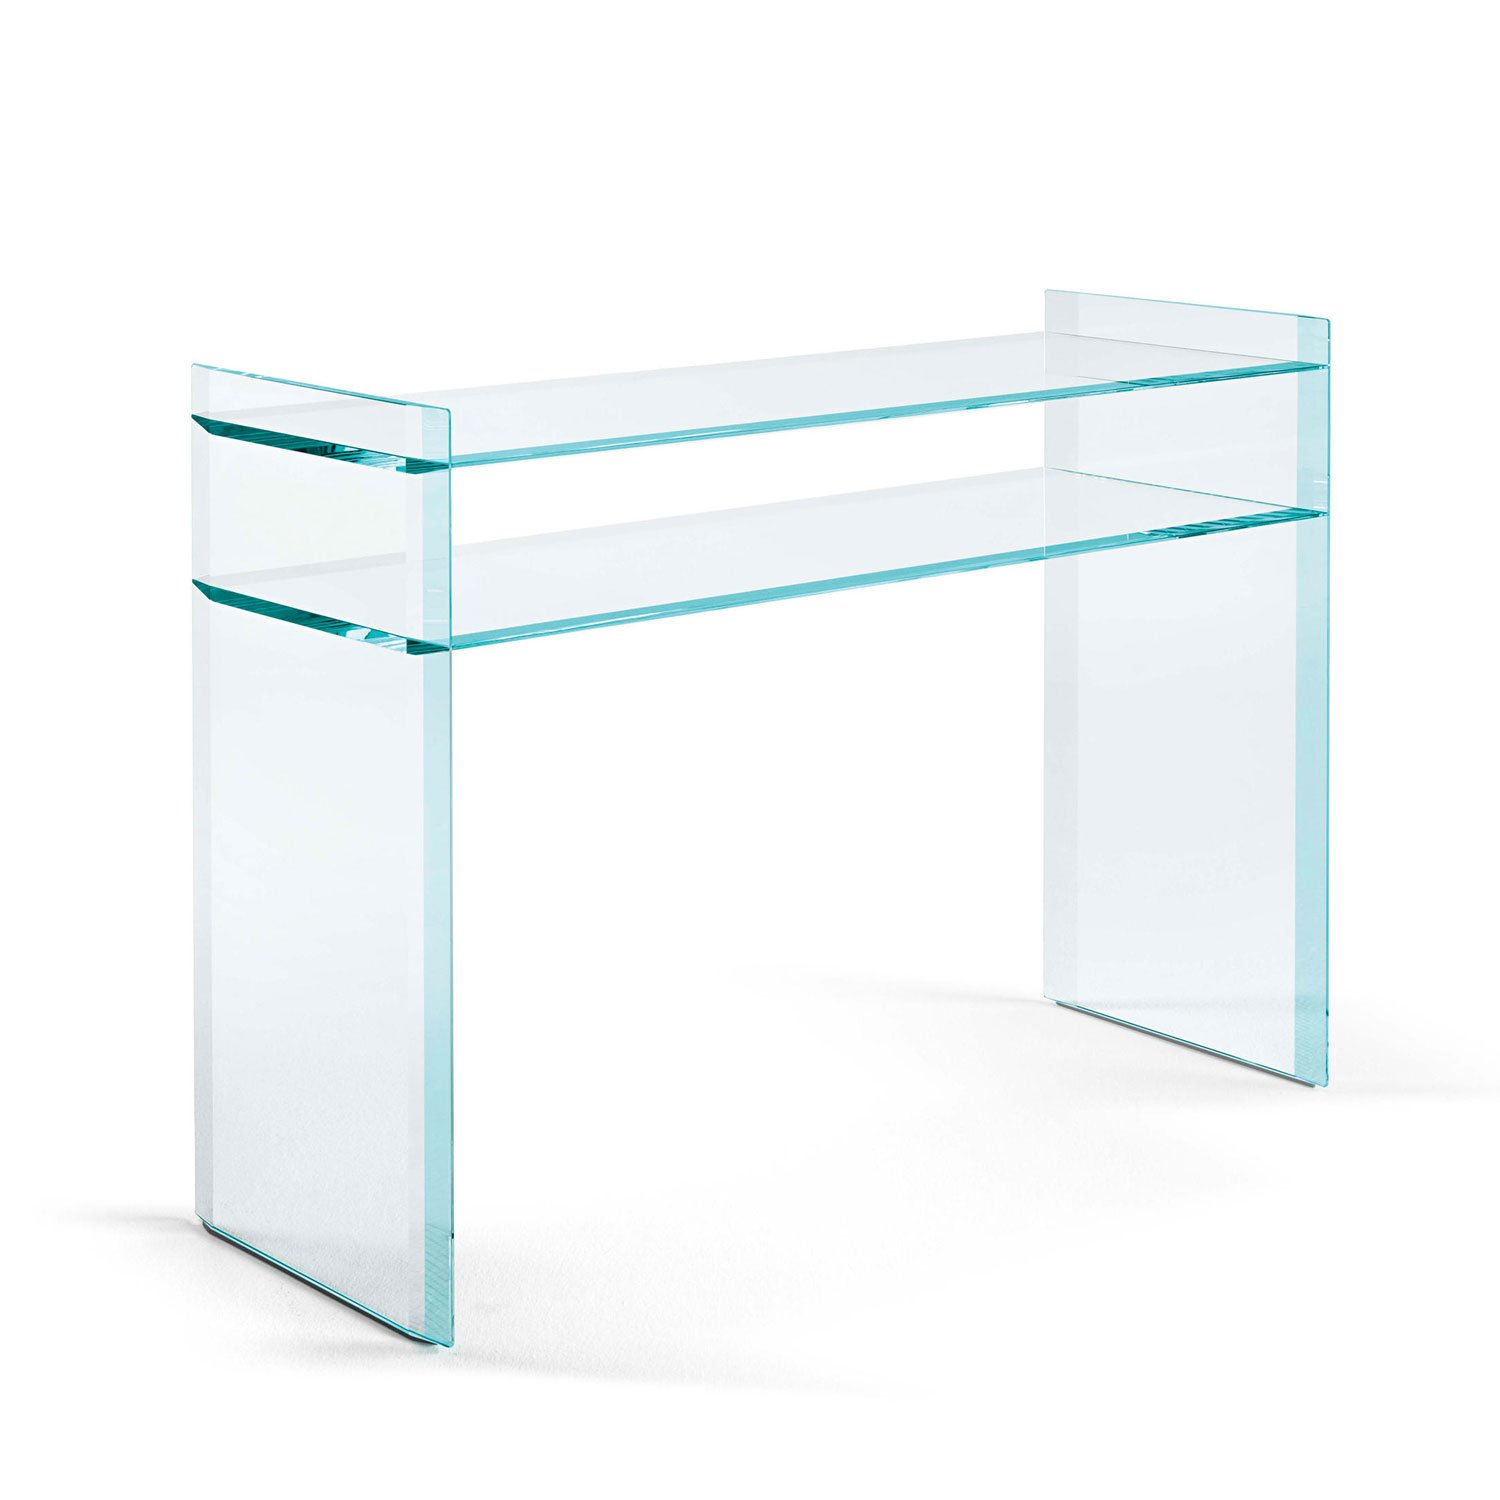 quiller console table in glass  klarity glass furniture - klarity  glass furniture shop  glass console tables  quiller consoletable